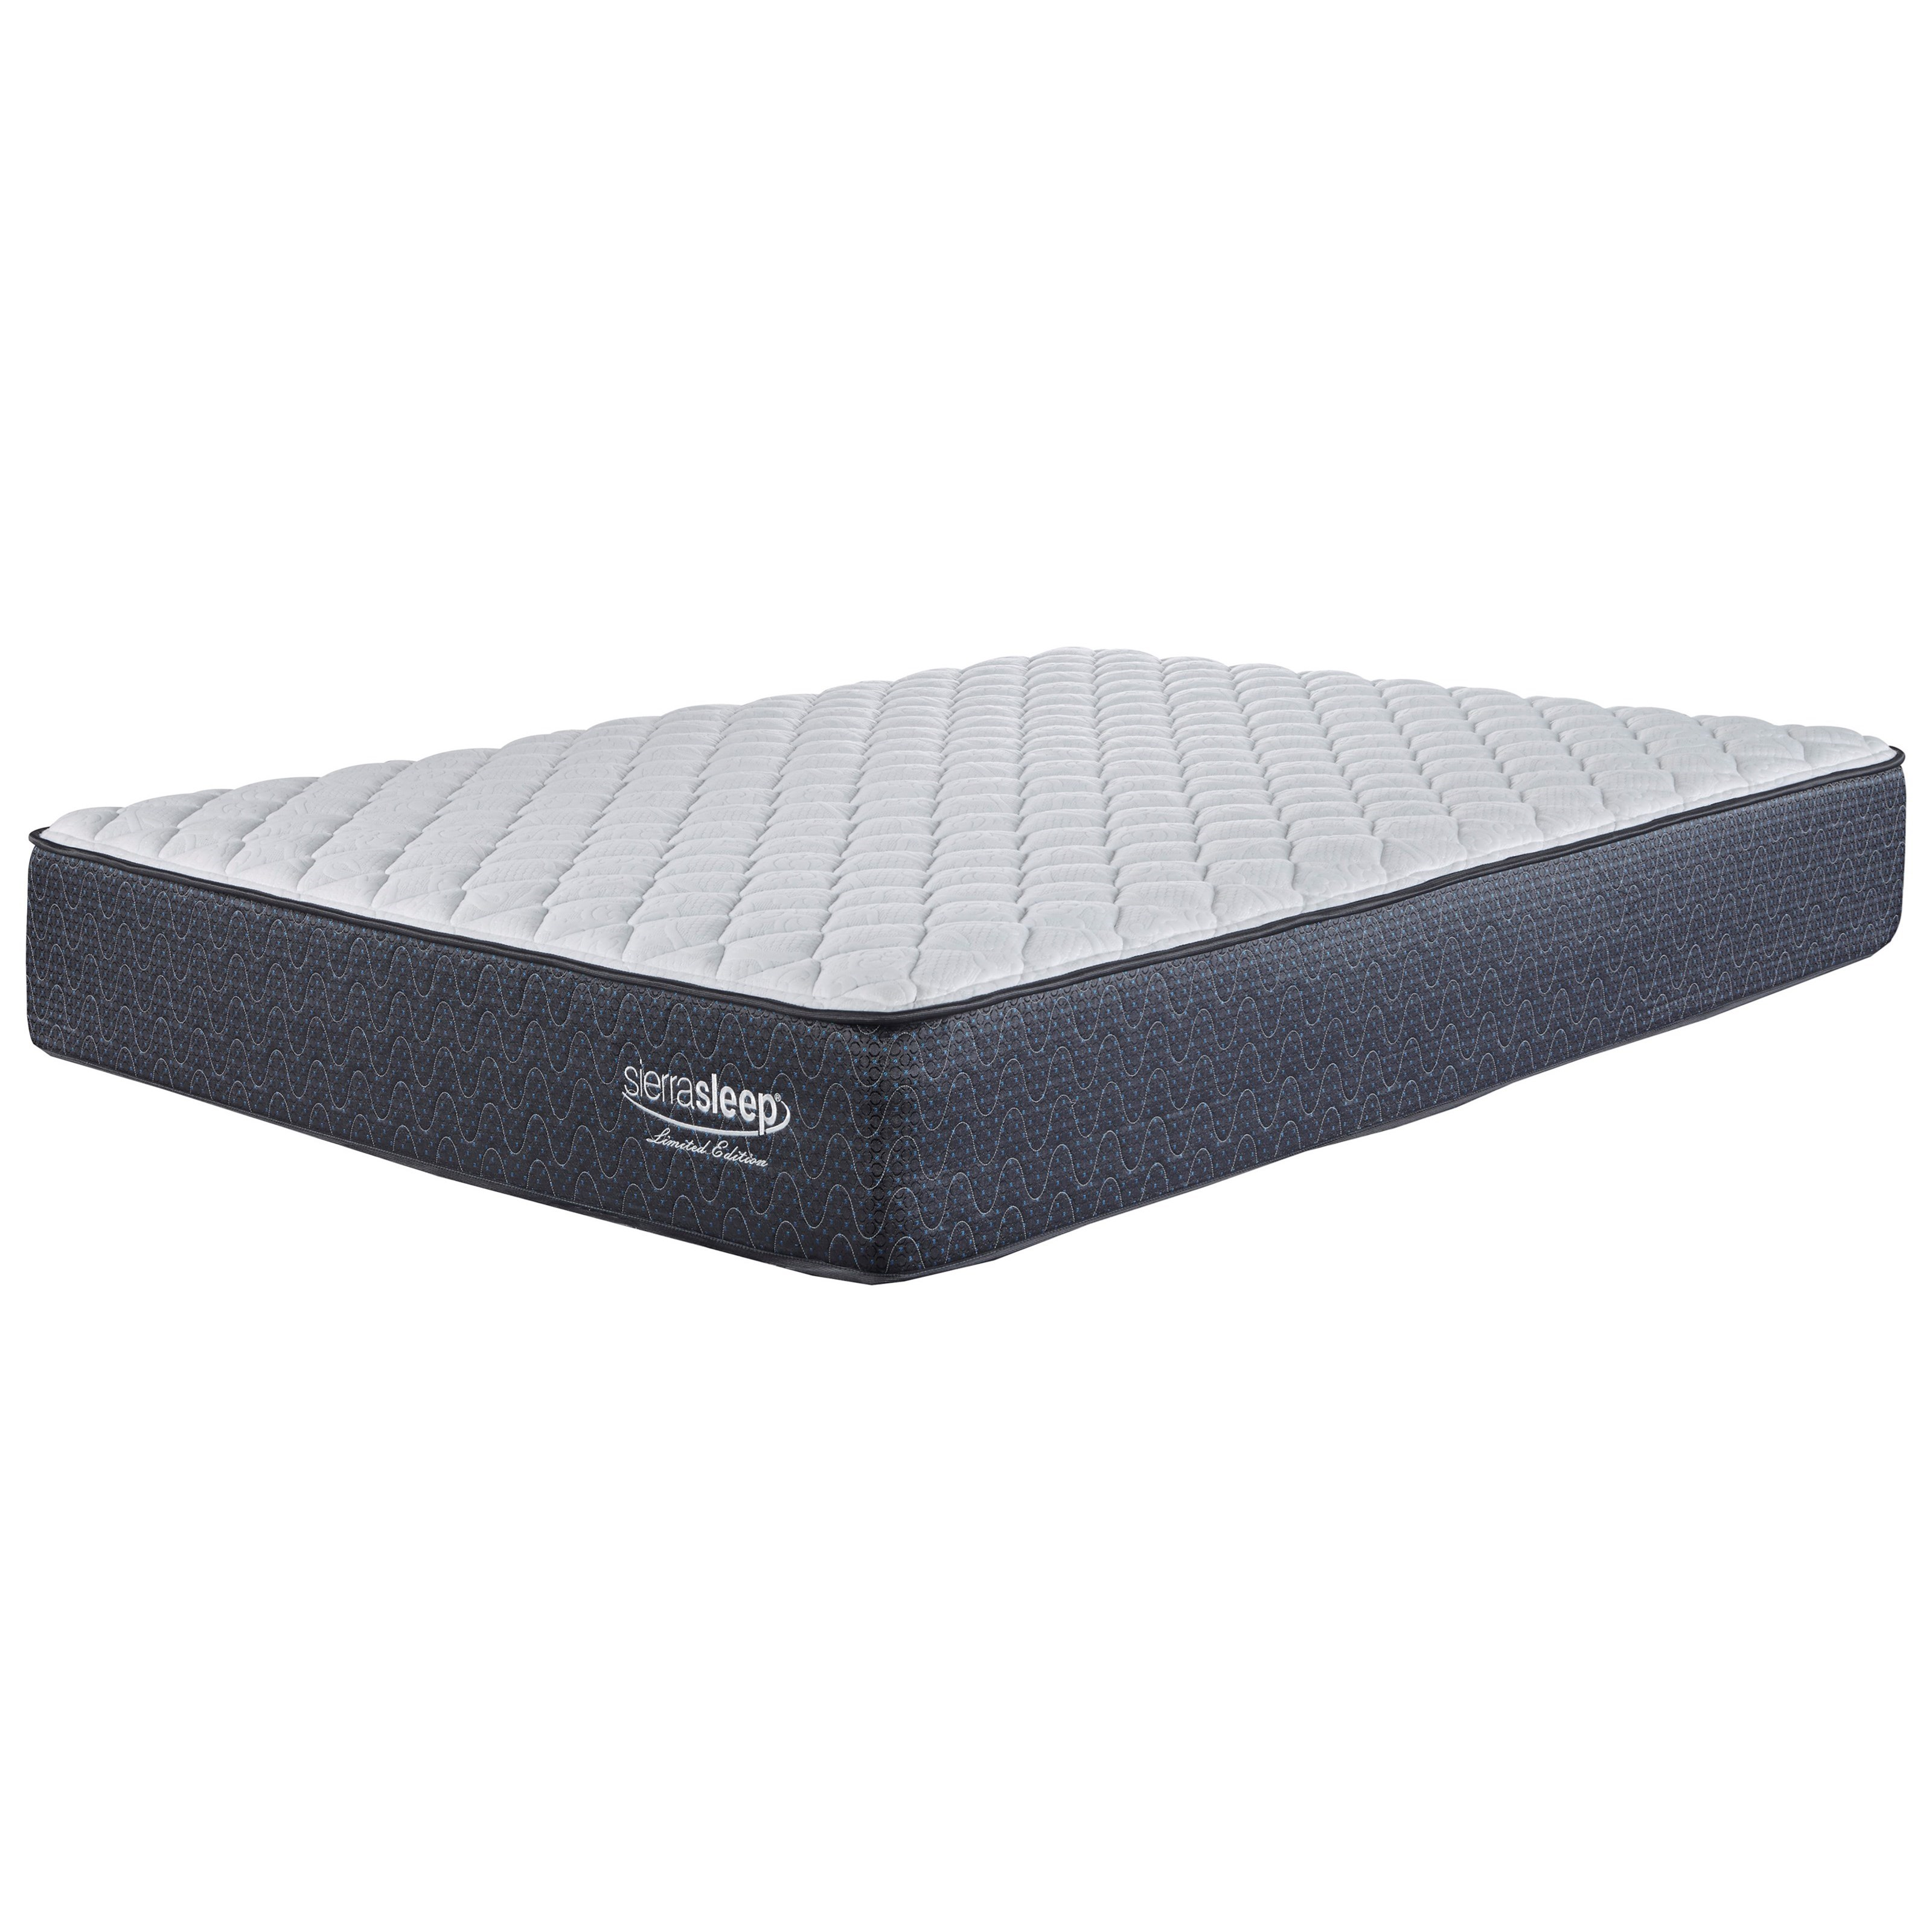 "Sierra Sleep Limited Edition Firm Full 13"" Firm Mattress - Item Number: M79721"